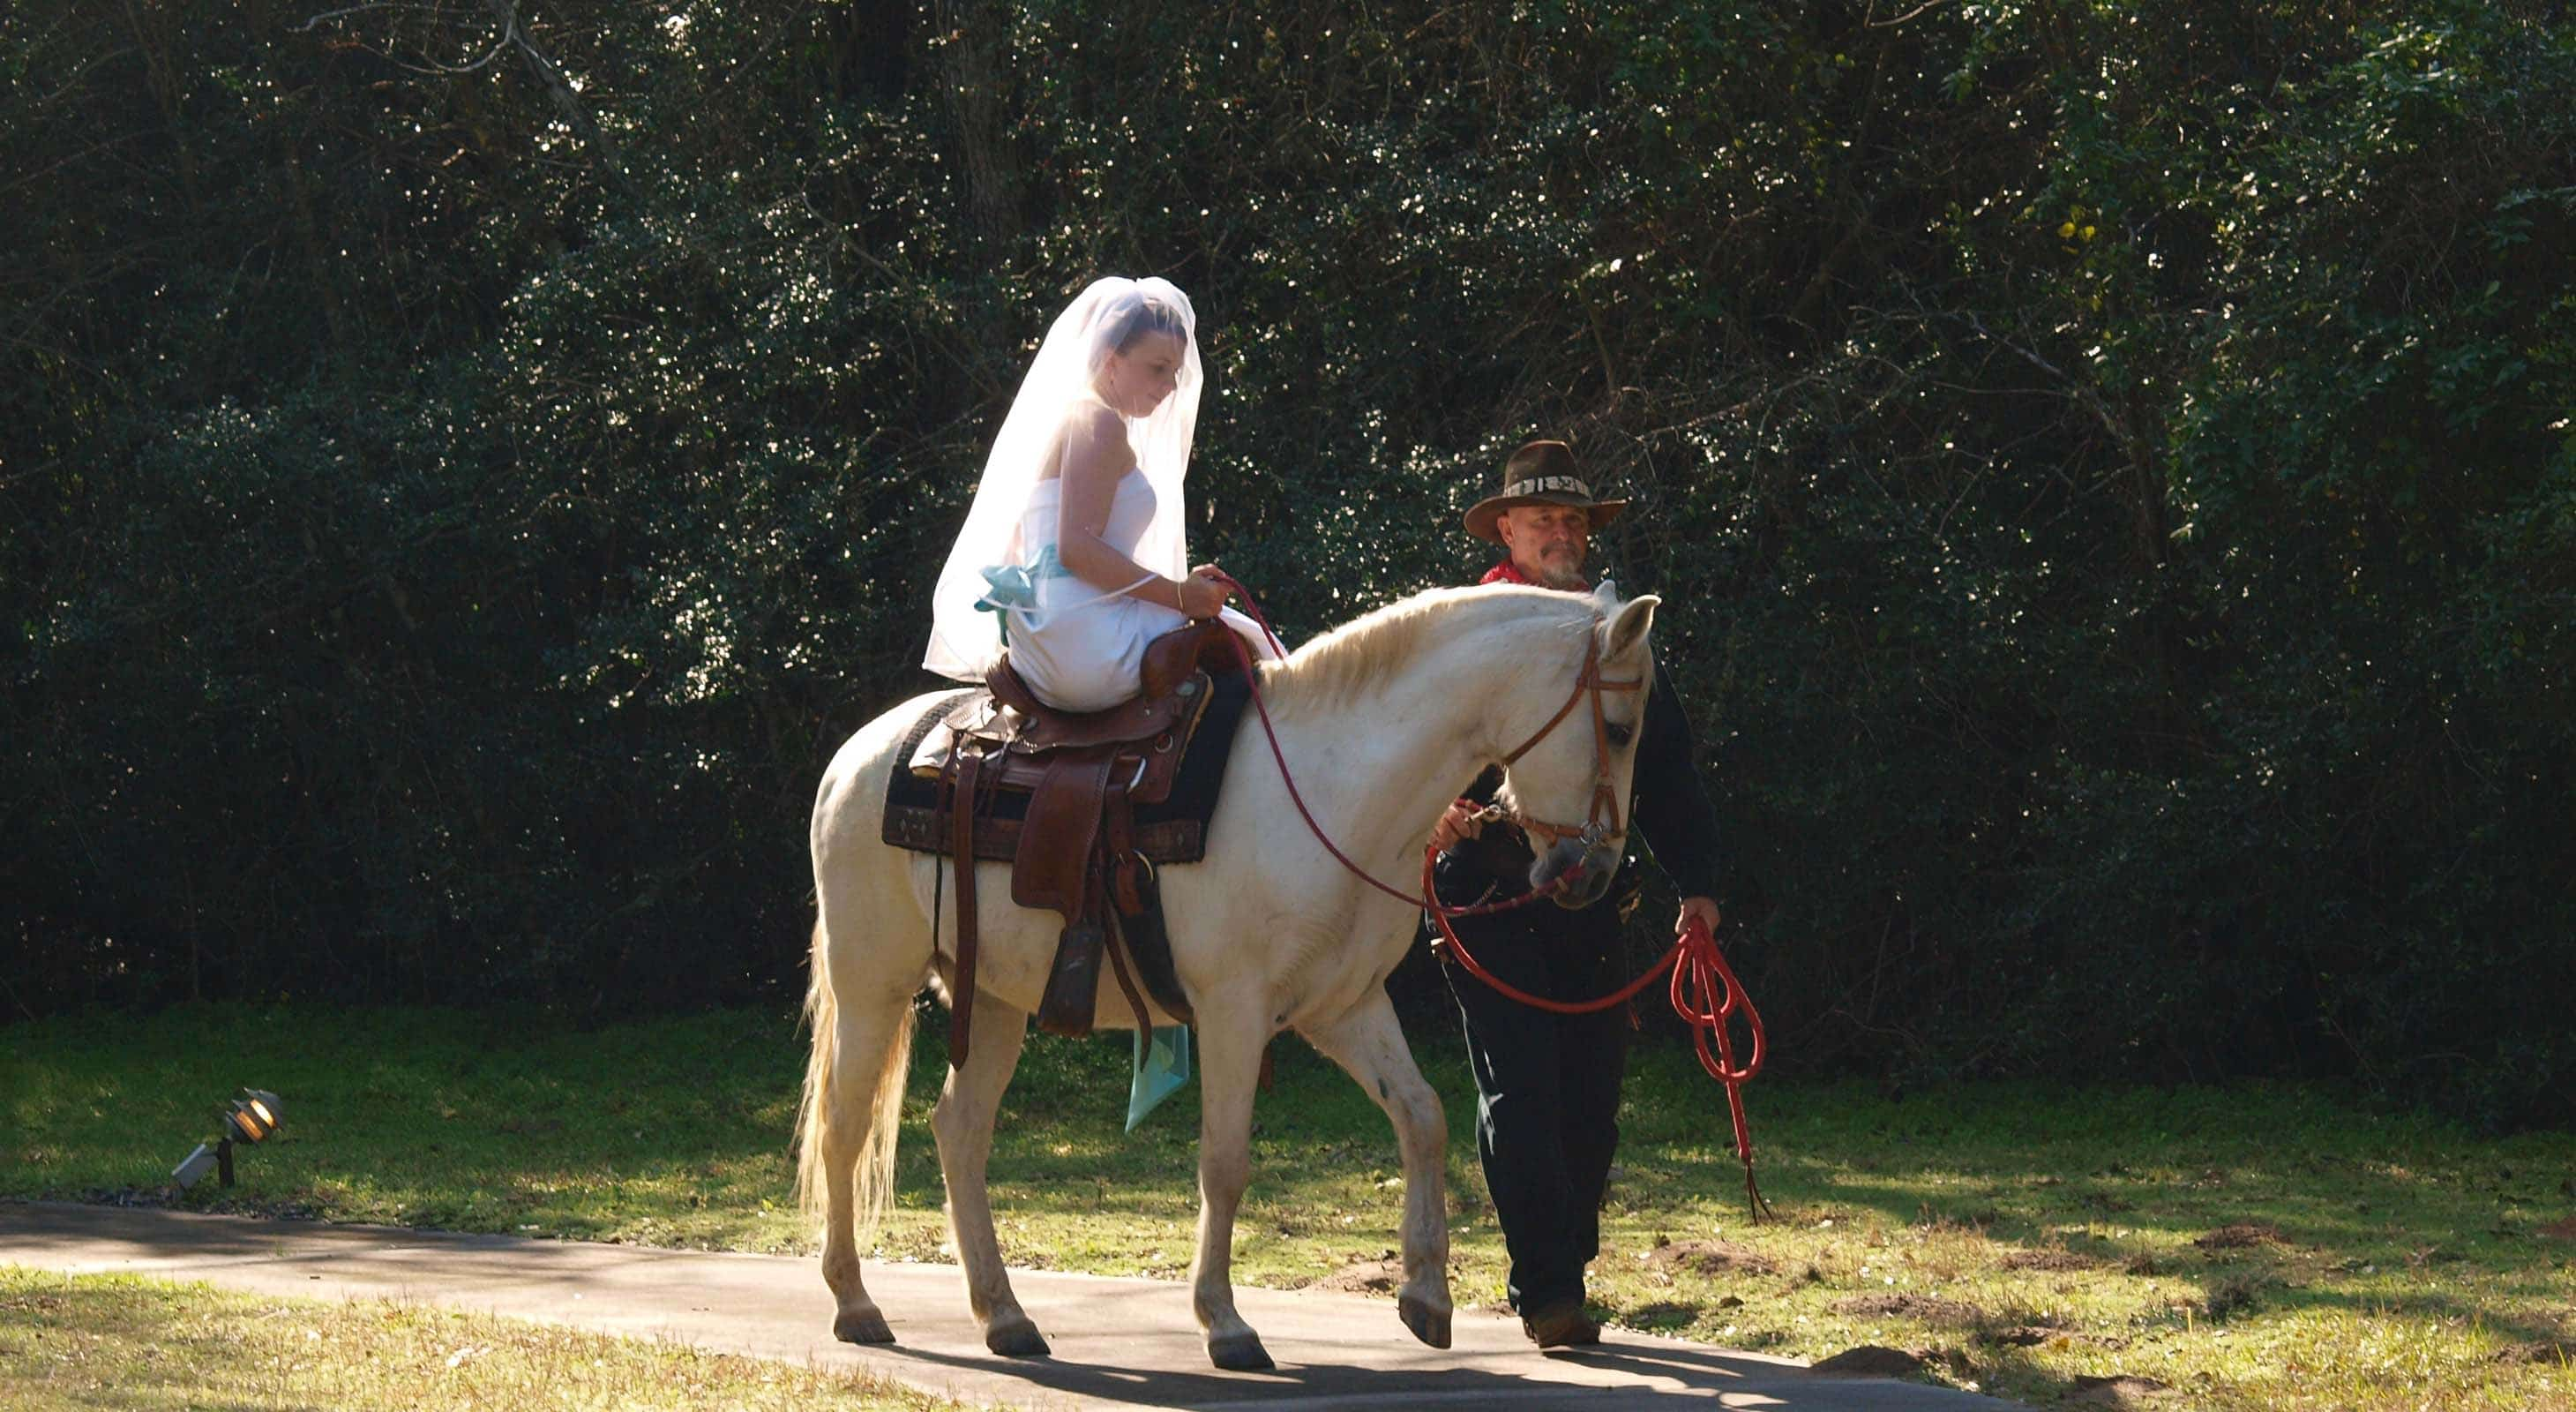 A bride riding a horse side saddle